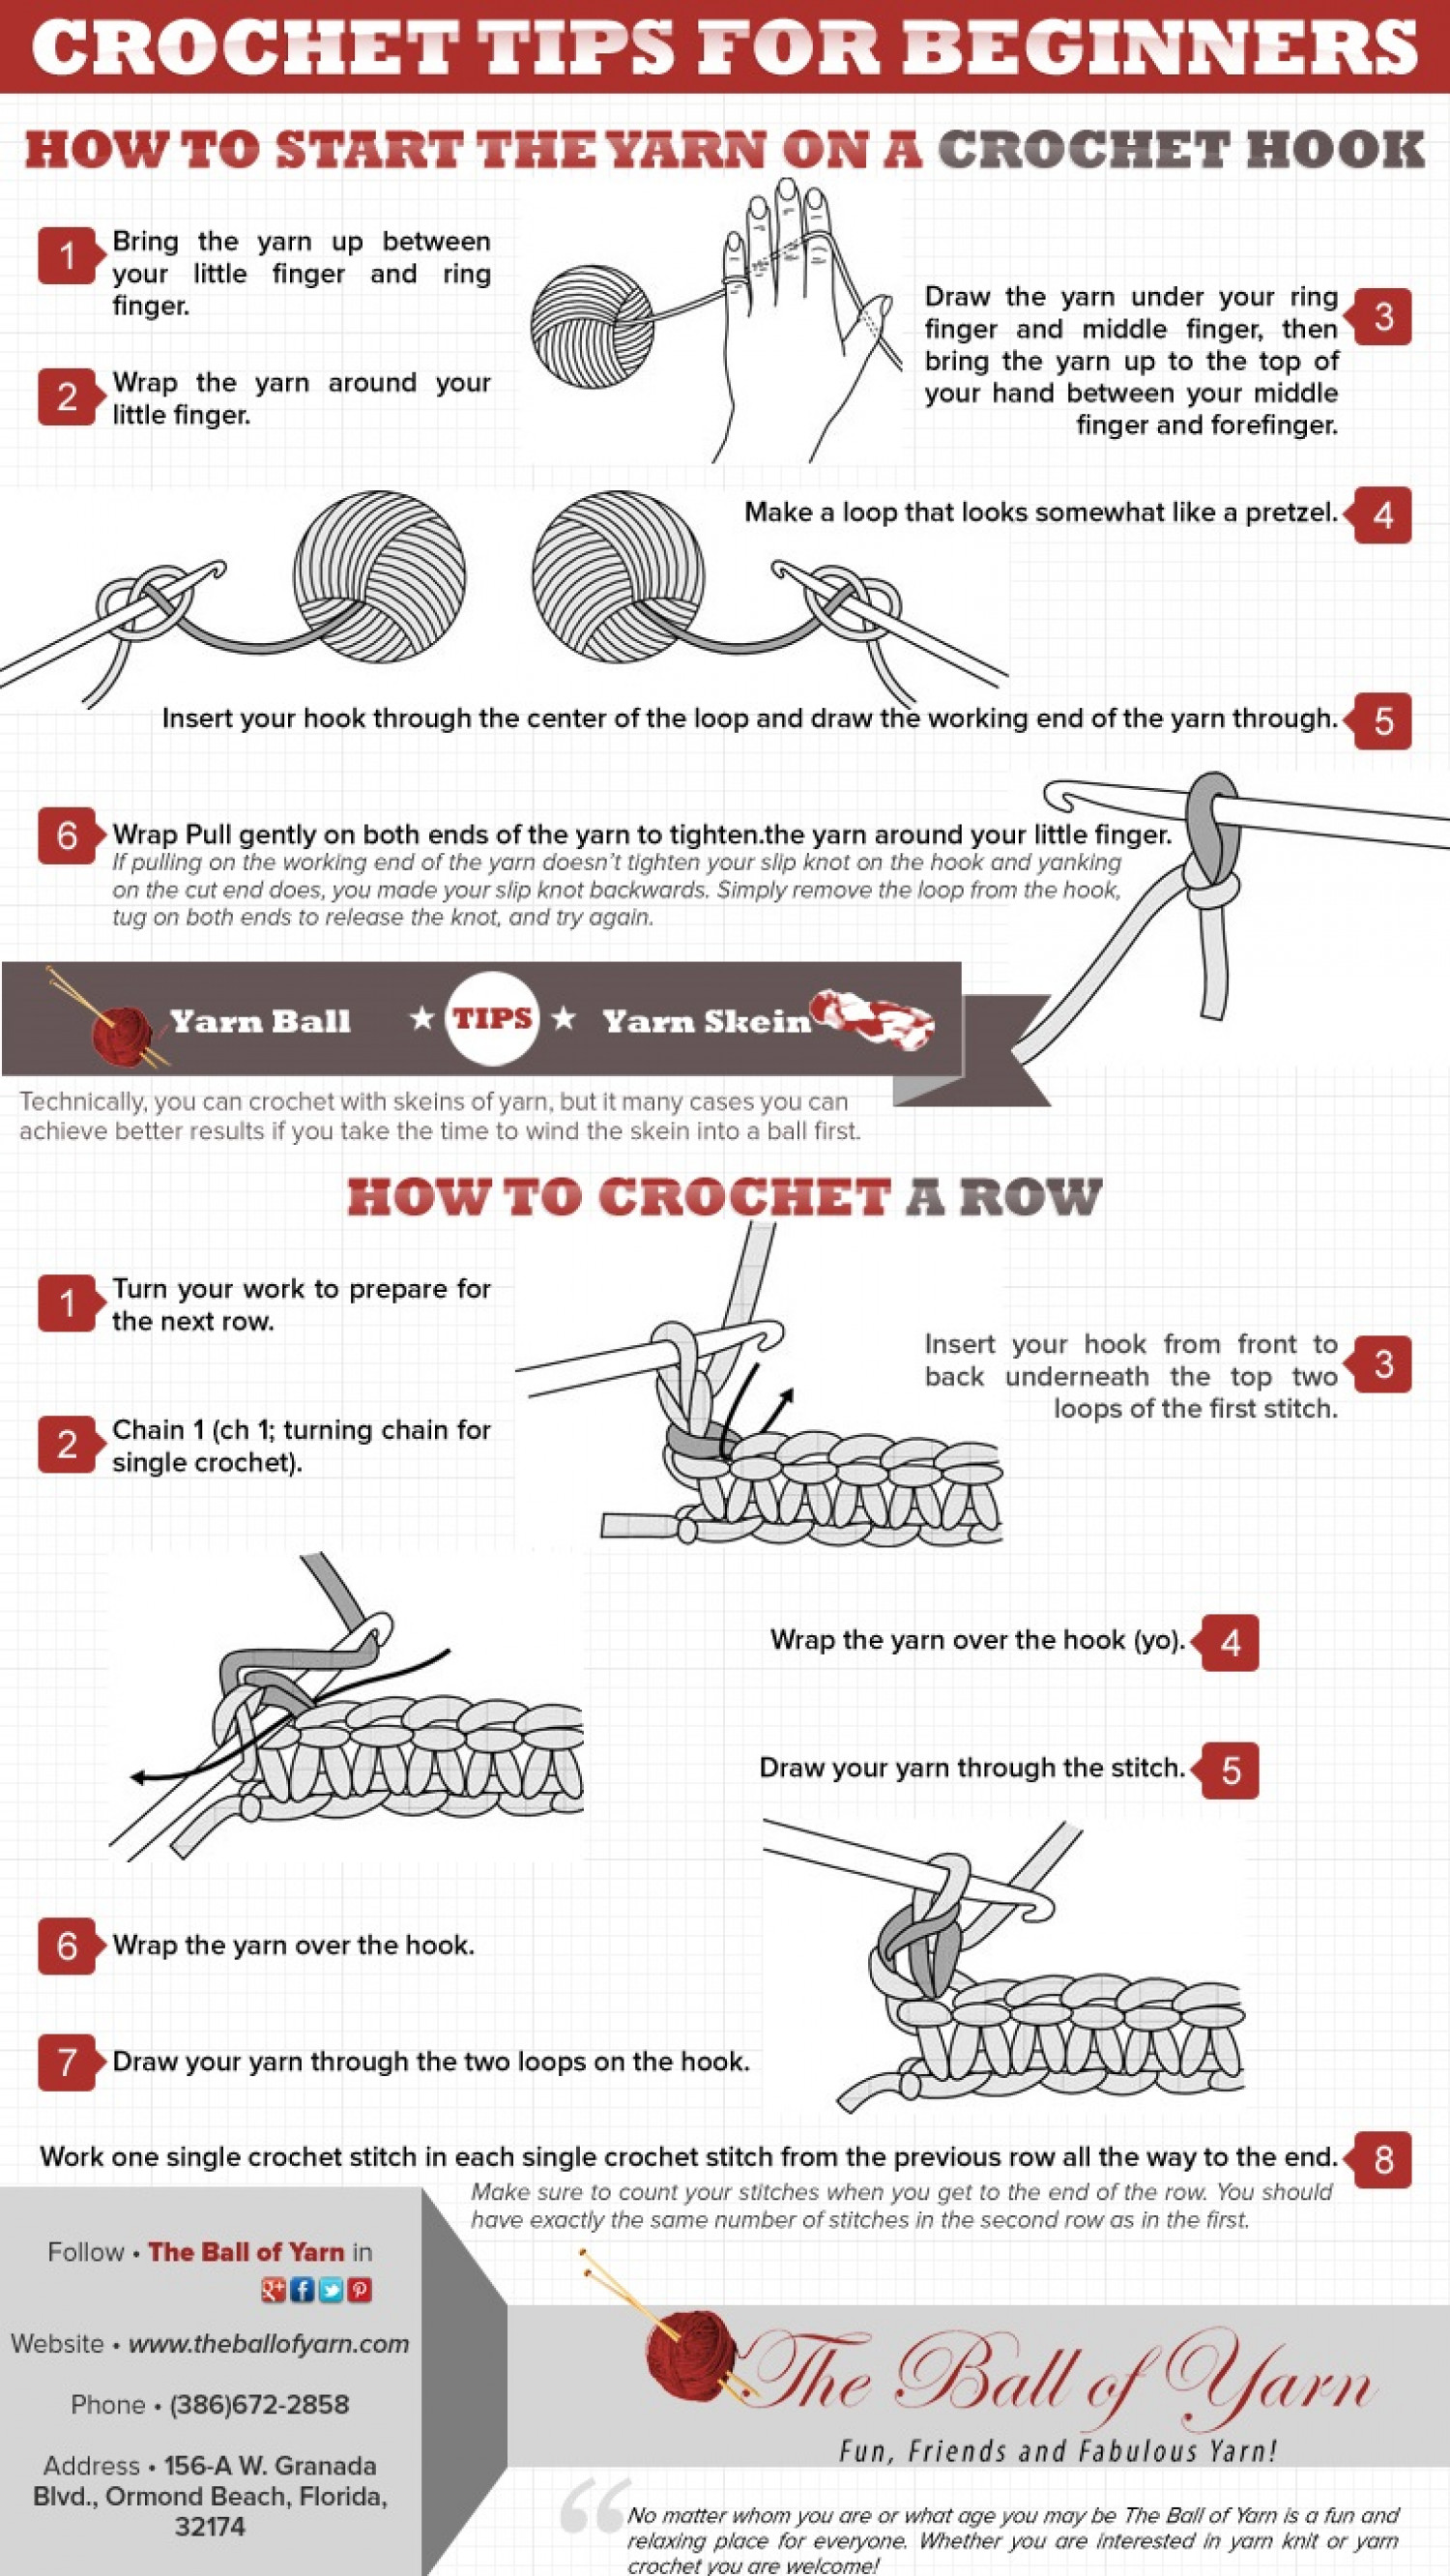 Crochet Tips for Beginners Infographic